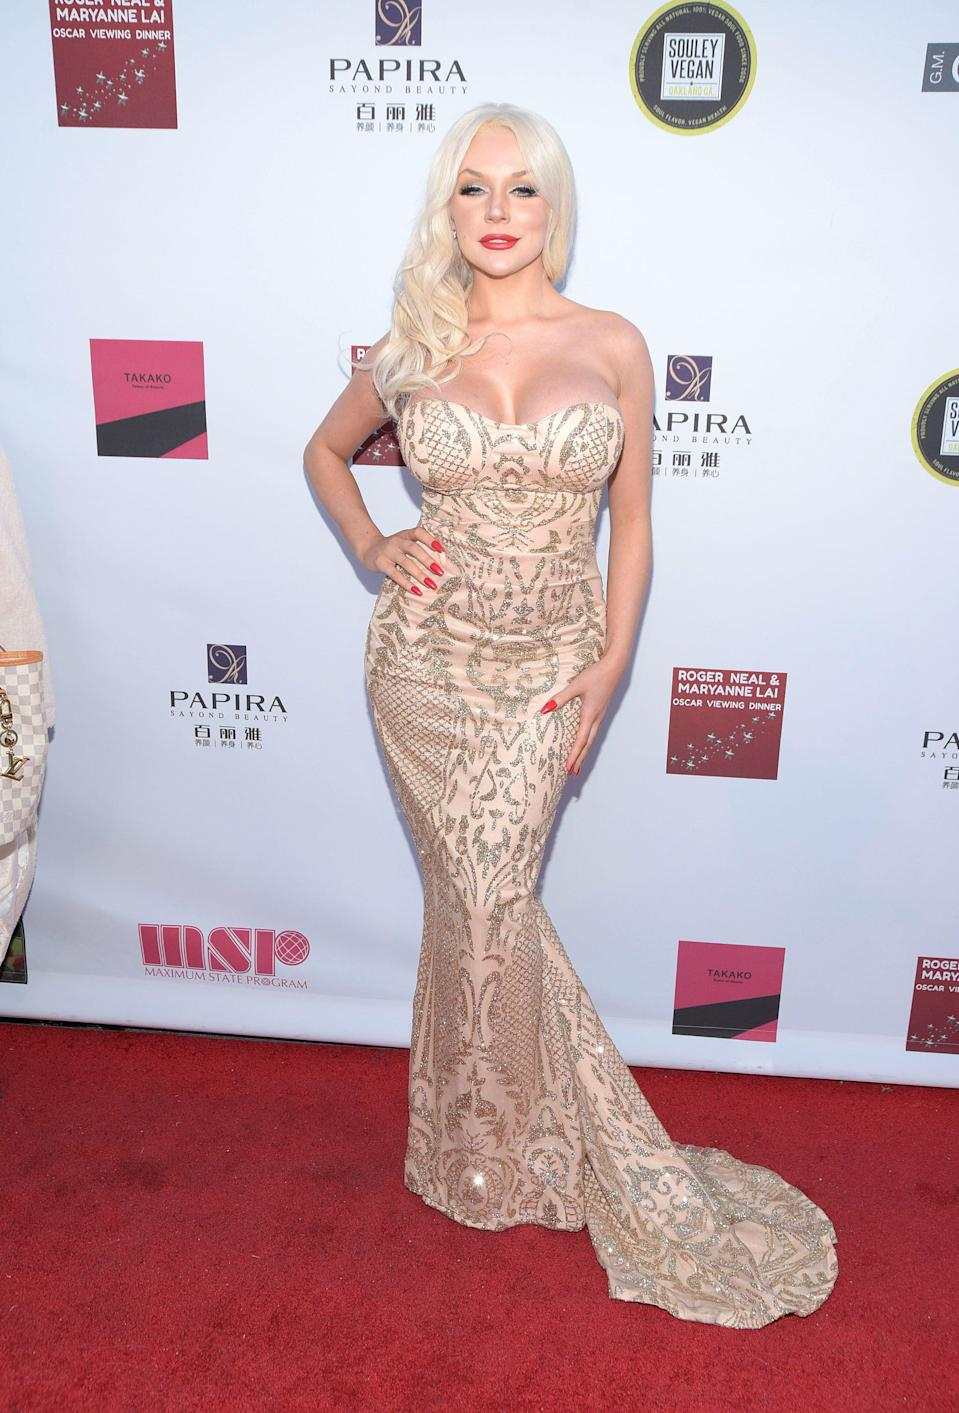 Courtney Stodden looks like a goddess in a gold and shimmery outfit as she poses on the red carpet for the paparazzi to take a few shots.